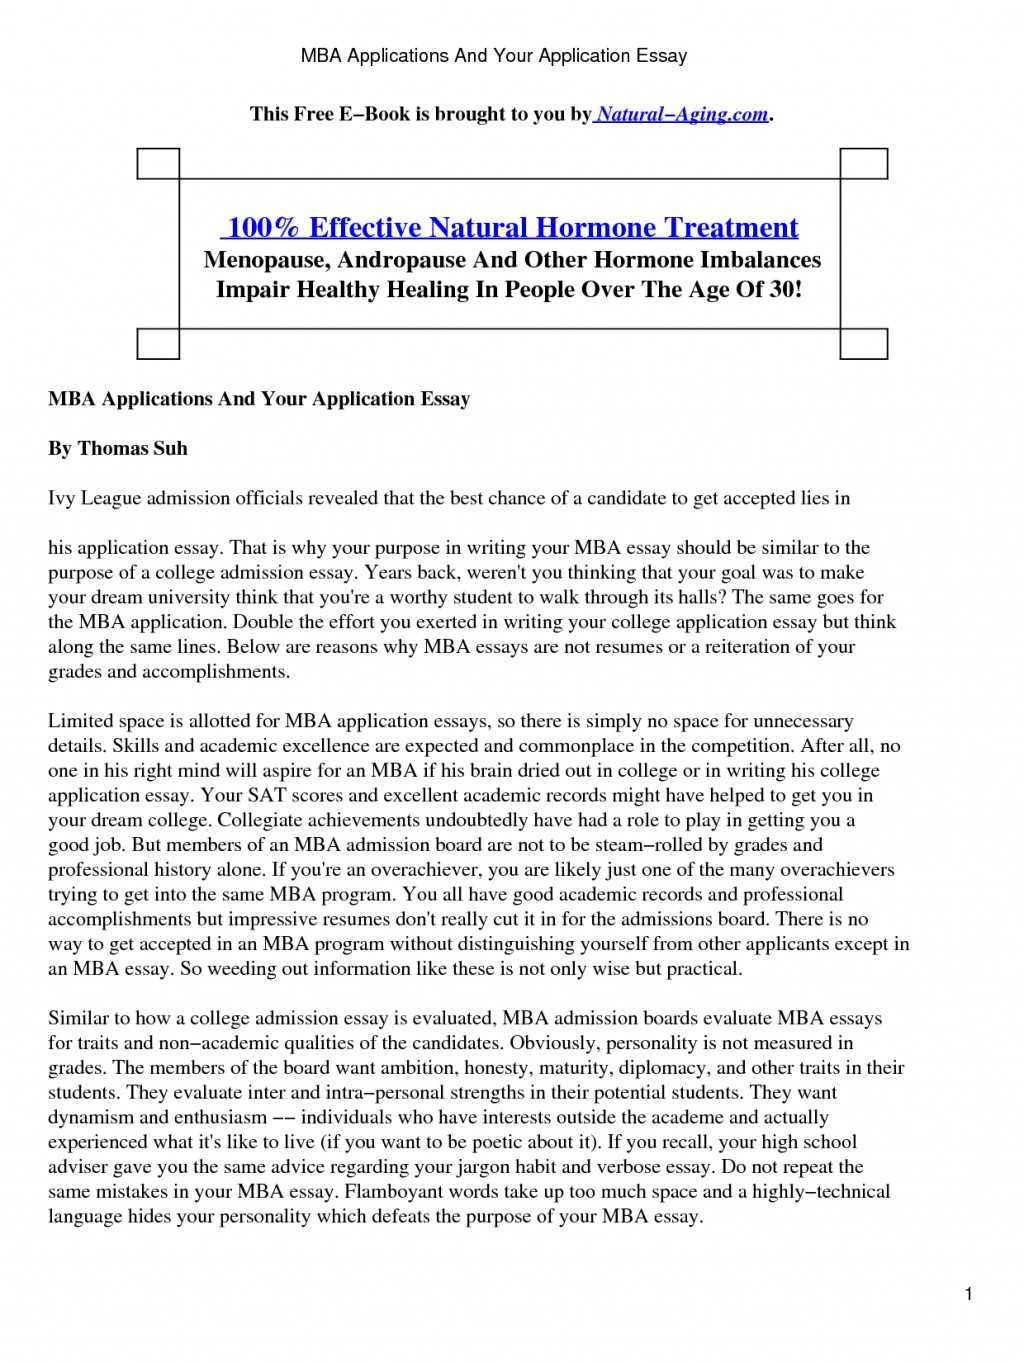 024 Duke Mba Essays Essay Ons For Top Ranked Business Schools Entrance Format Harvard Stanford Guidelines Application Columbia Structure Yale Sample Archaicawful Analysis Examples Large